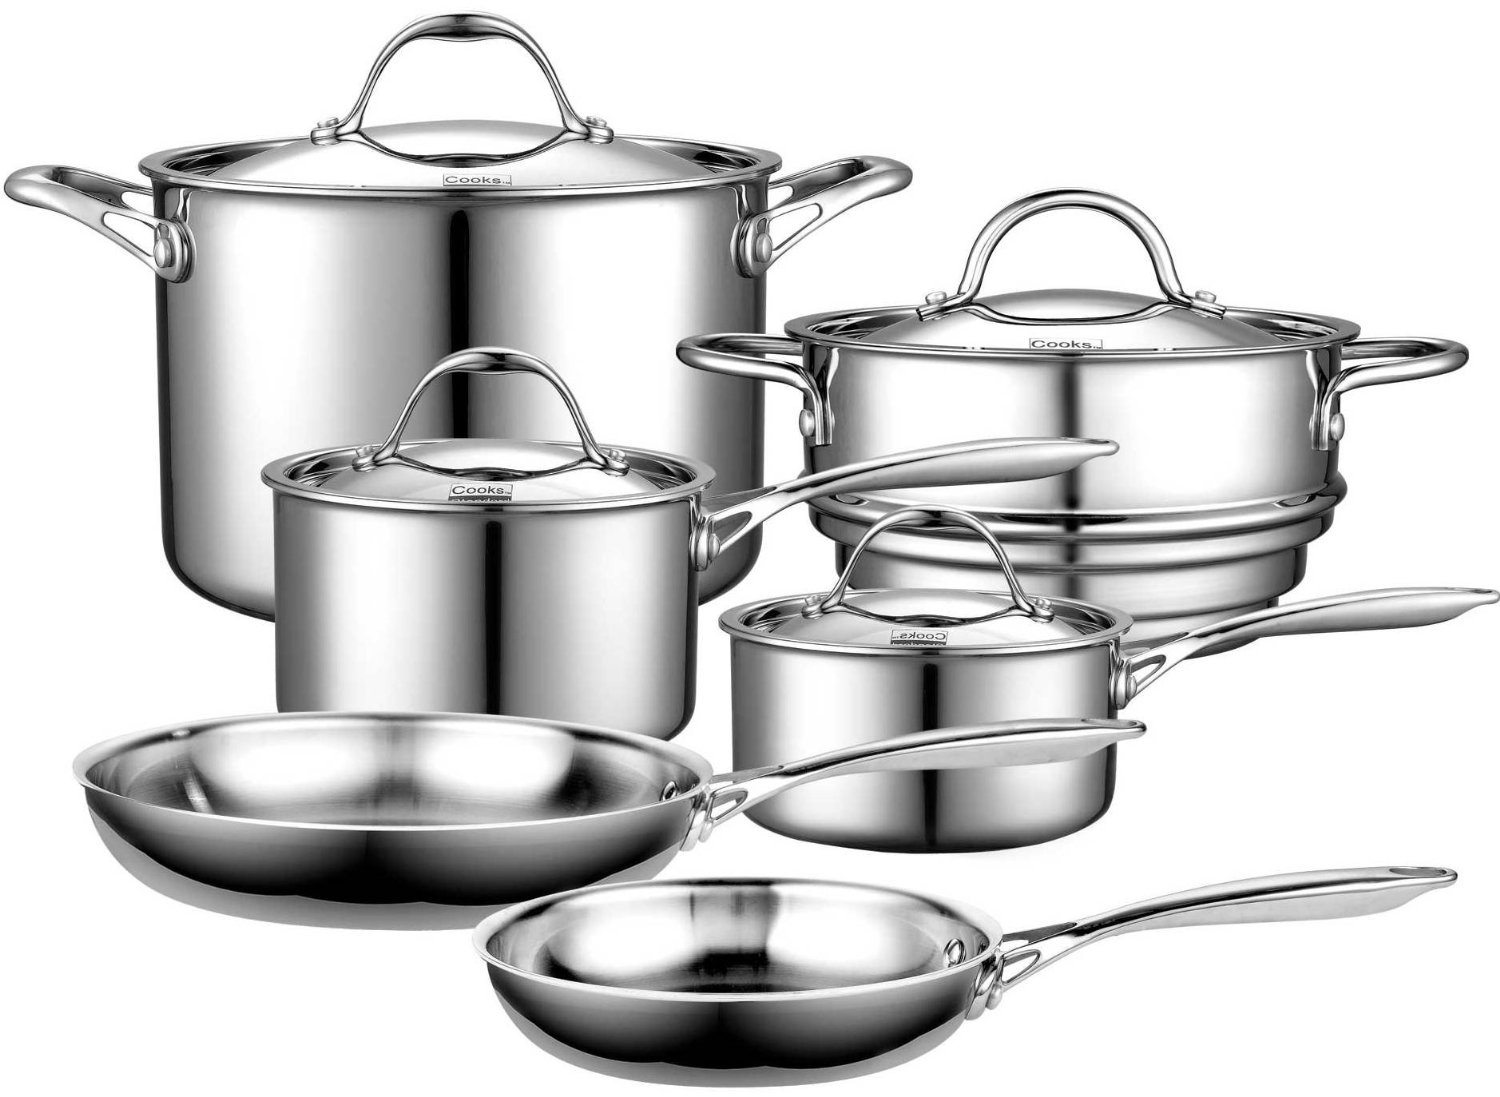 how to arrange pots and pans in kitchen hideaway table cooks standard multi ply clad review stainless steel